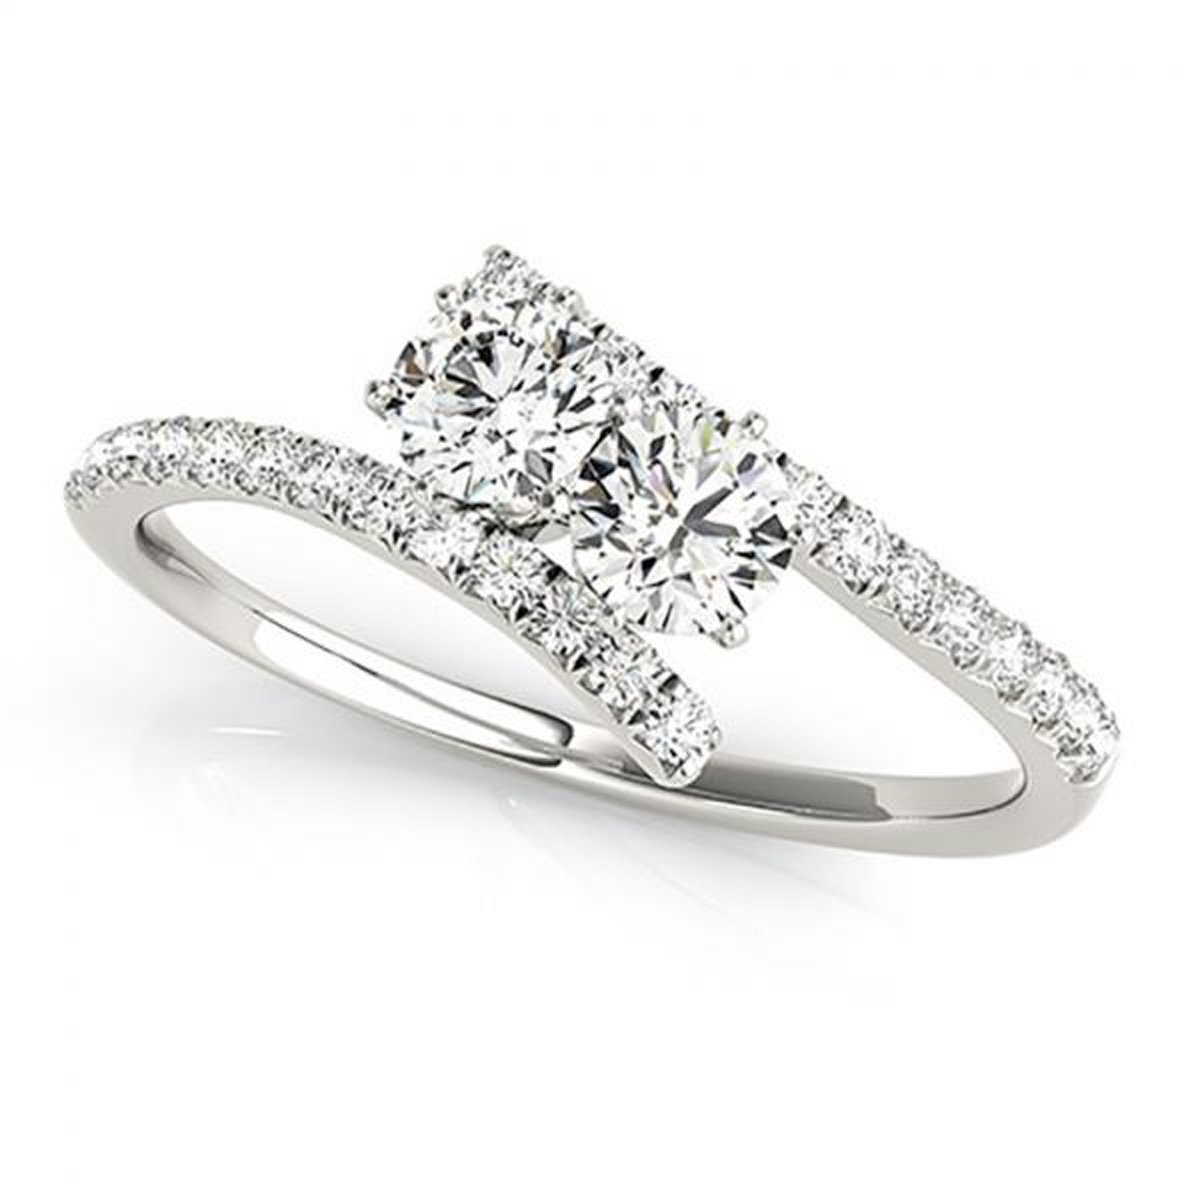 Star Retail CZ Simulated Lab Created Diamond Tension Style Shank Forever US Two Stone Ring 925 Sterling Silver Plated 0.75ct by Star Retail